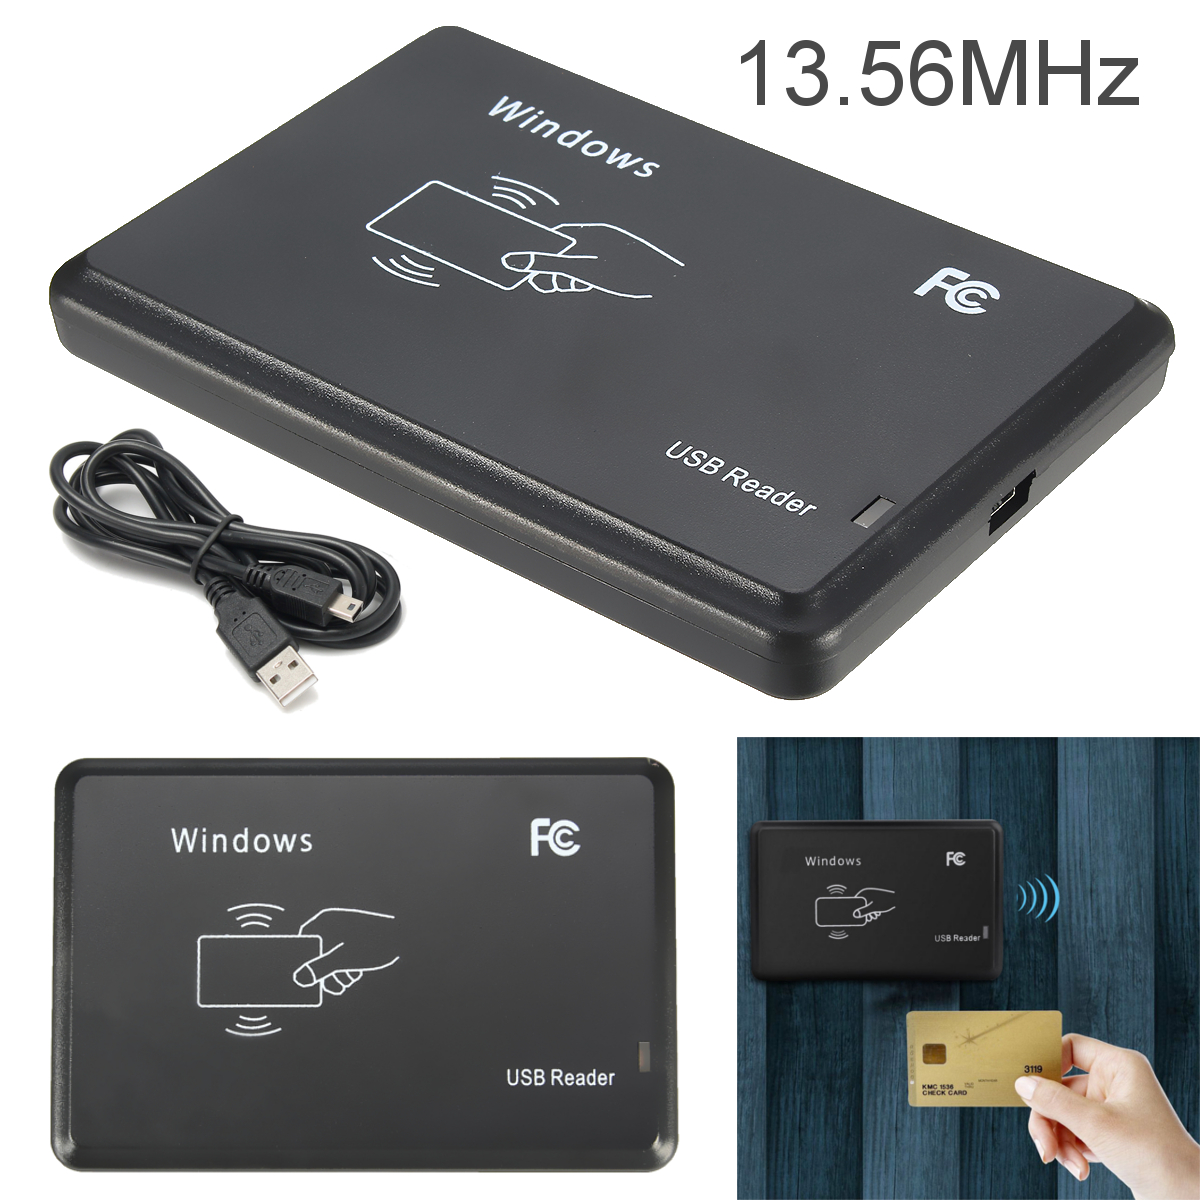 13 56MHZ USB M ifare RFID Contactless Proximity Sensor Smart Cards ID Card Reader 14443A with Innrech Market.com